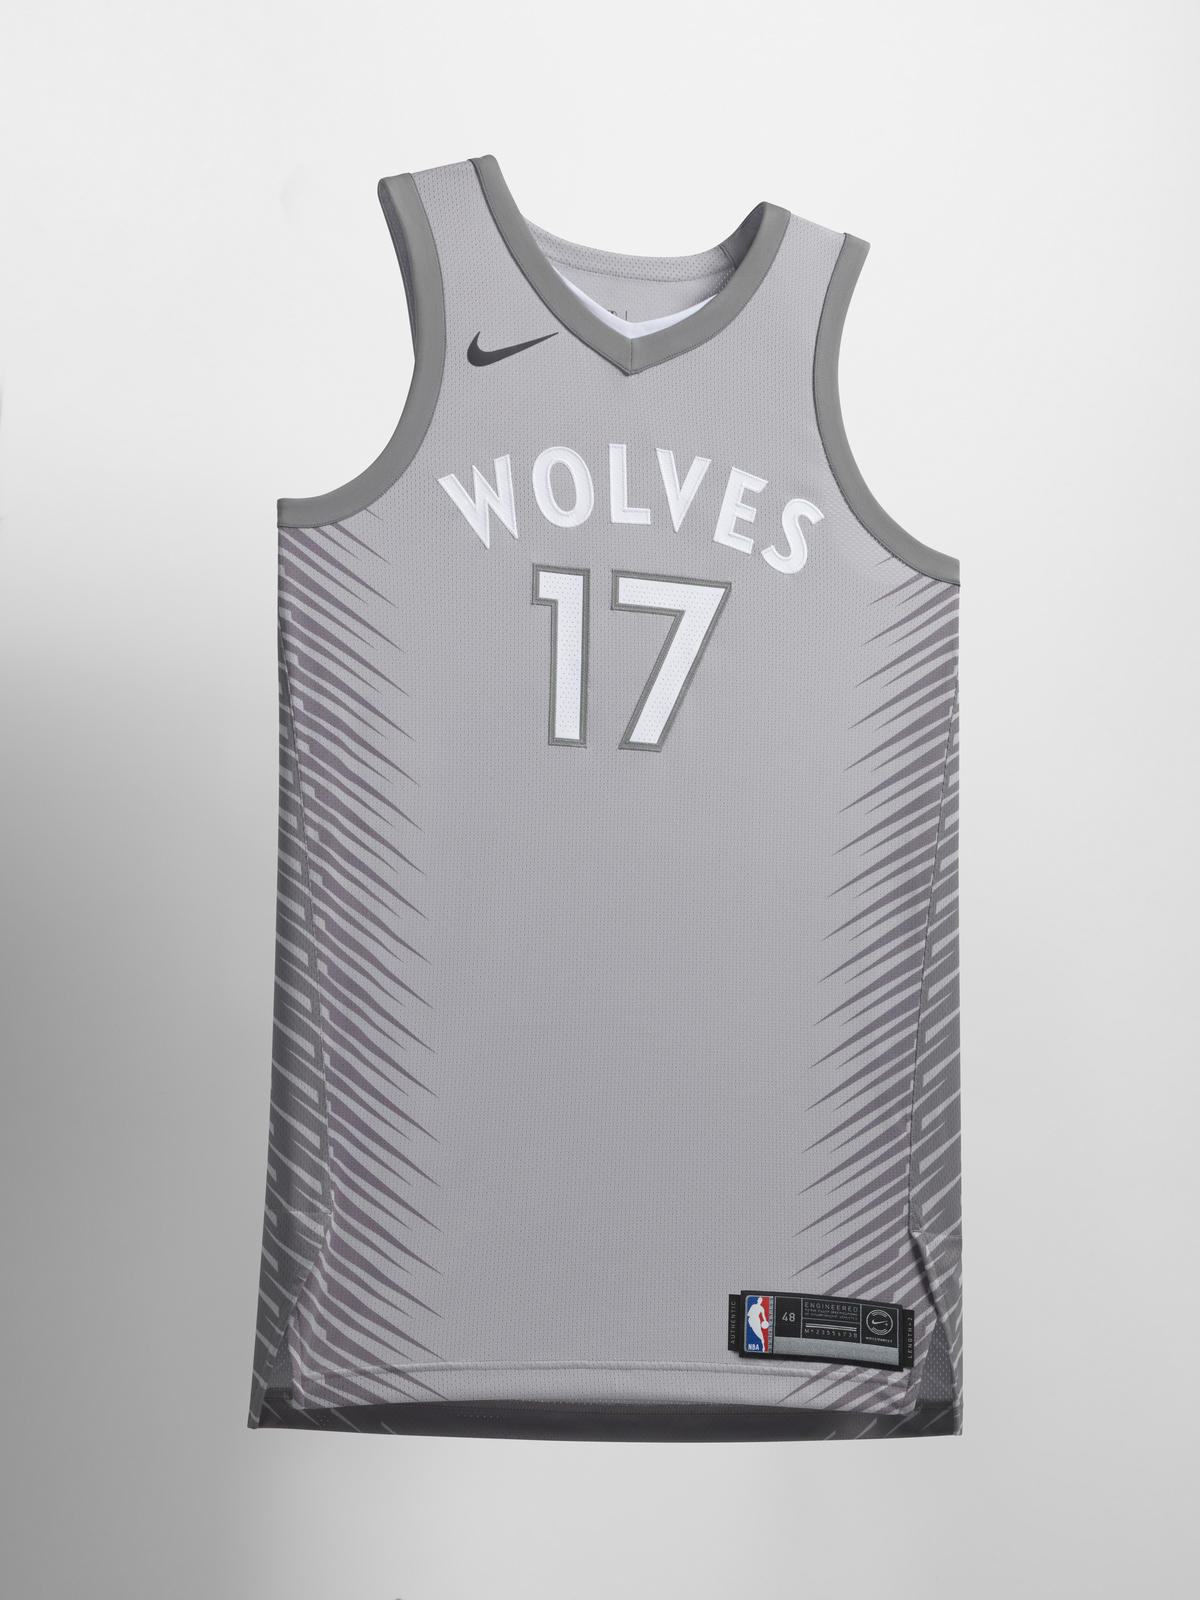 2107b033006 Nike NBA City Edition Uniform 67. Minnesota Timberwolves